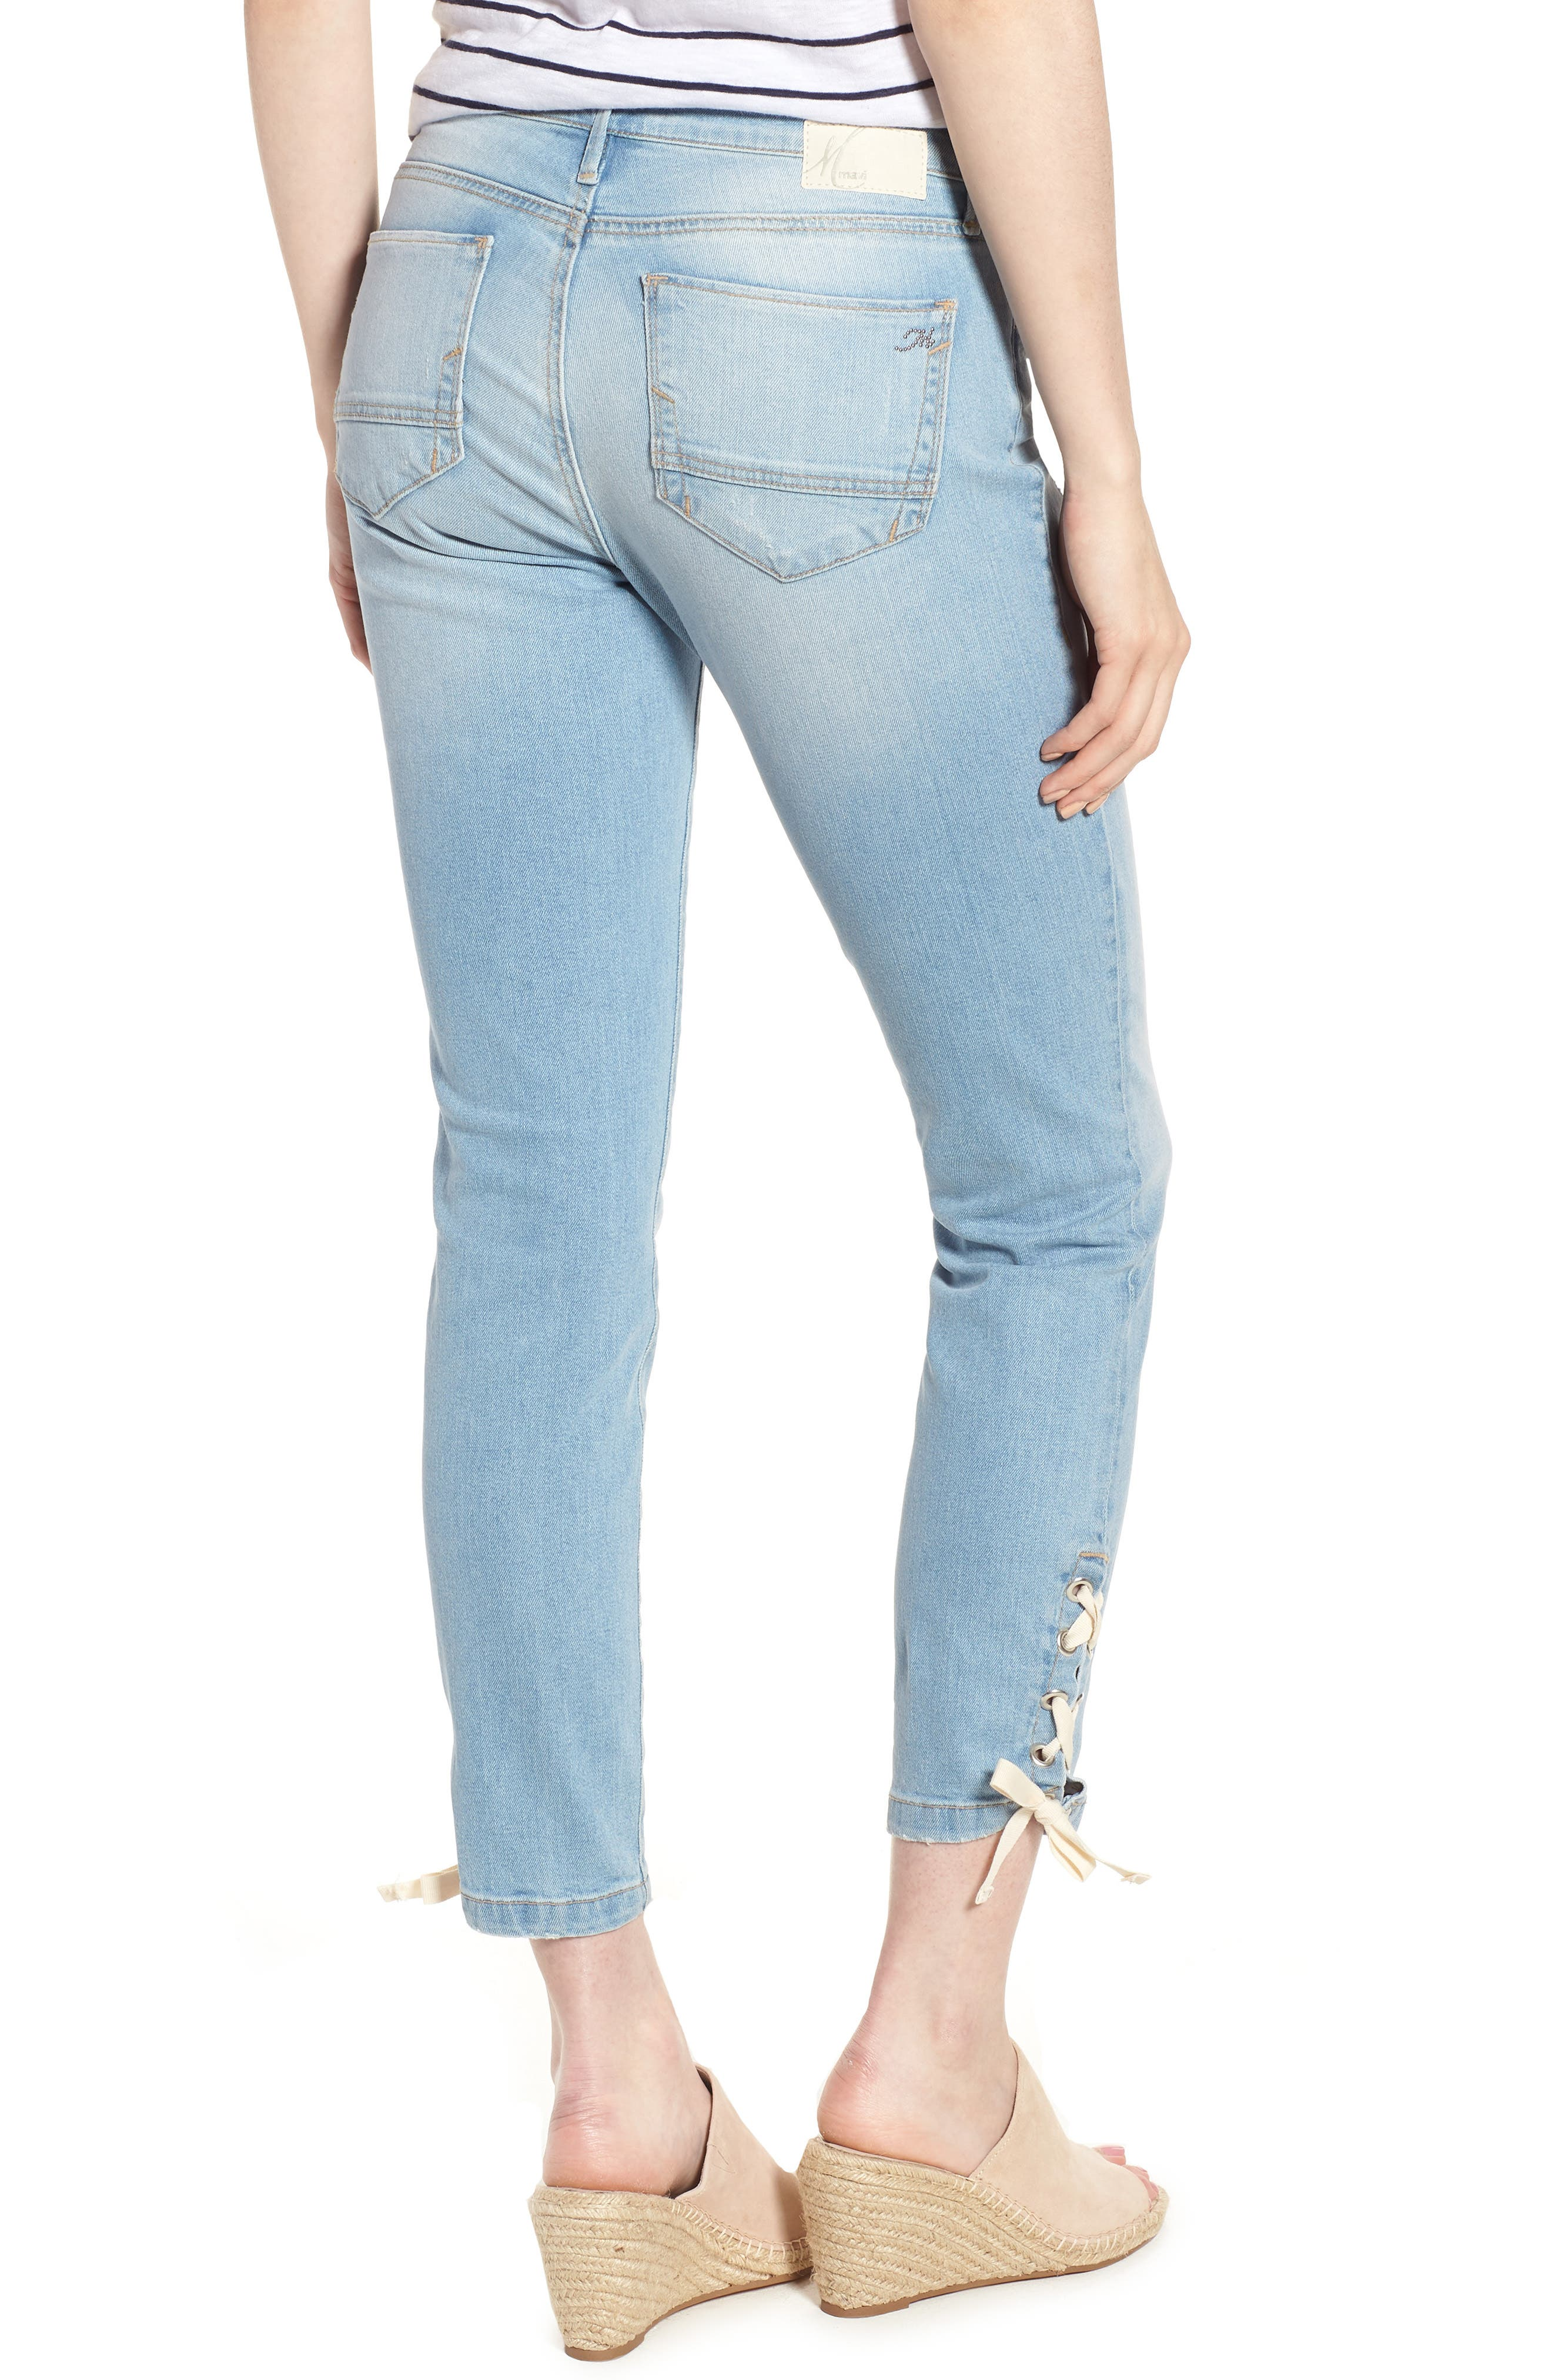 Adriana Laced Ankle Skinny Jeans,                             Alternate thumbnail 2, color,                             Bleach Summer Lace